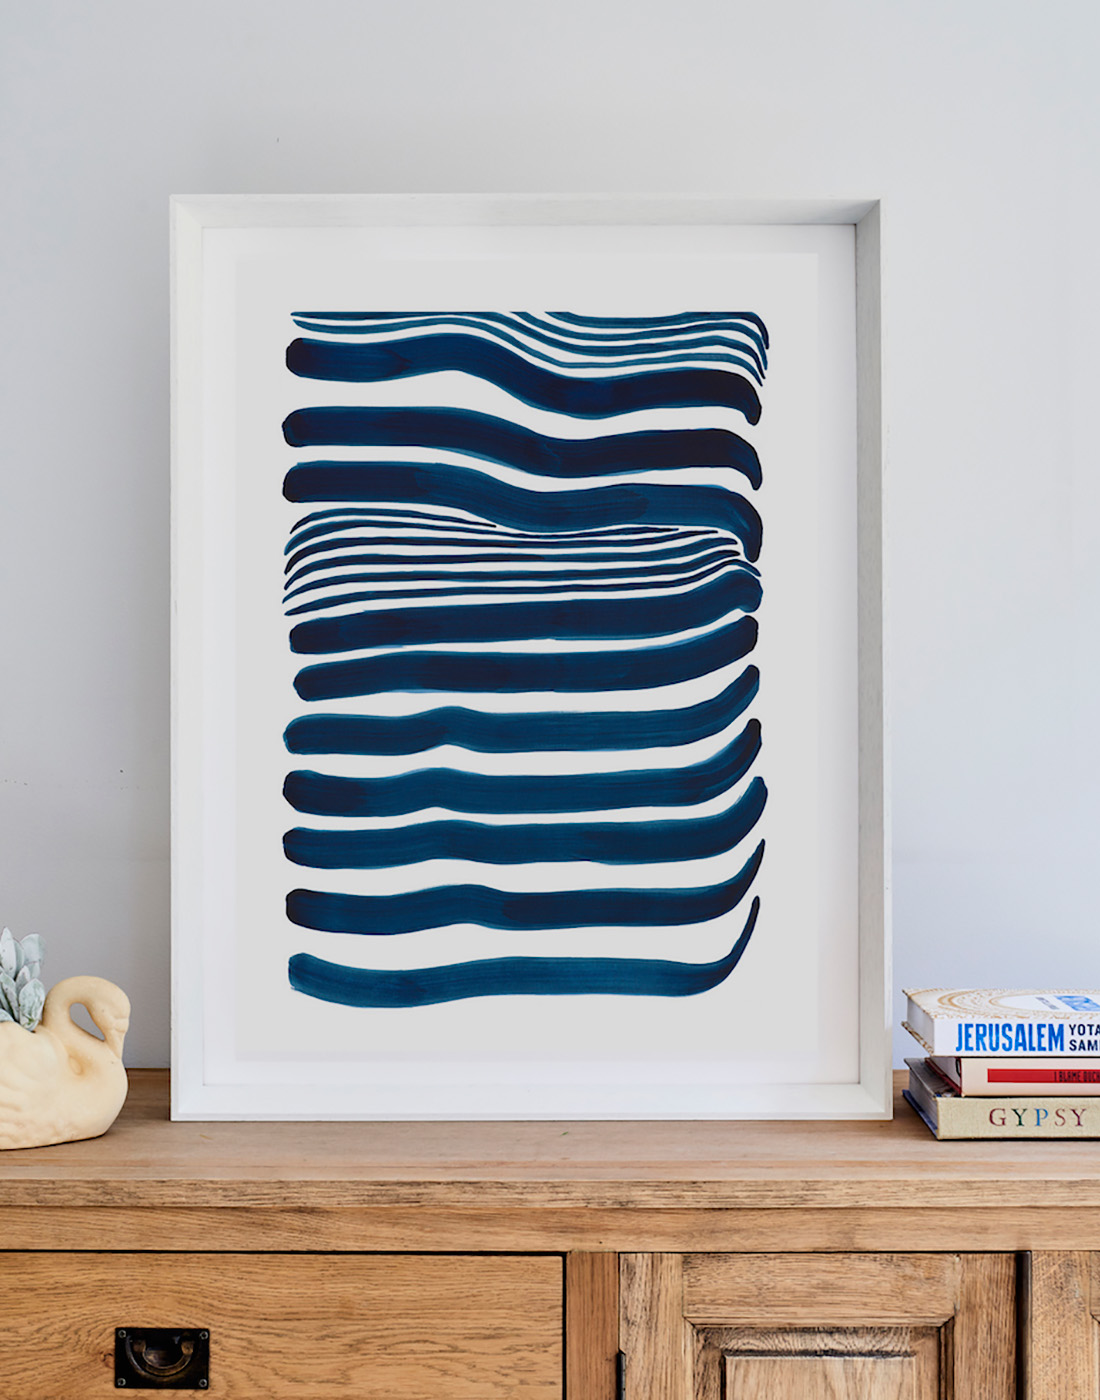 Navy Blue Lined Interior Stylist Fine Art Prints Quality Art Framed Prints Artist Tory Burke Melbourne Independent Artist Studio Elwood